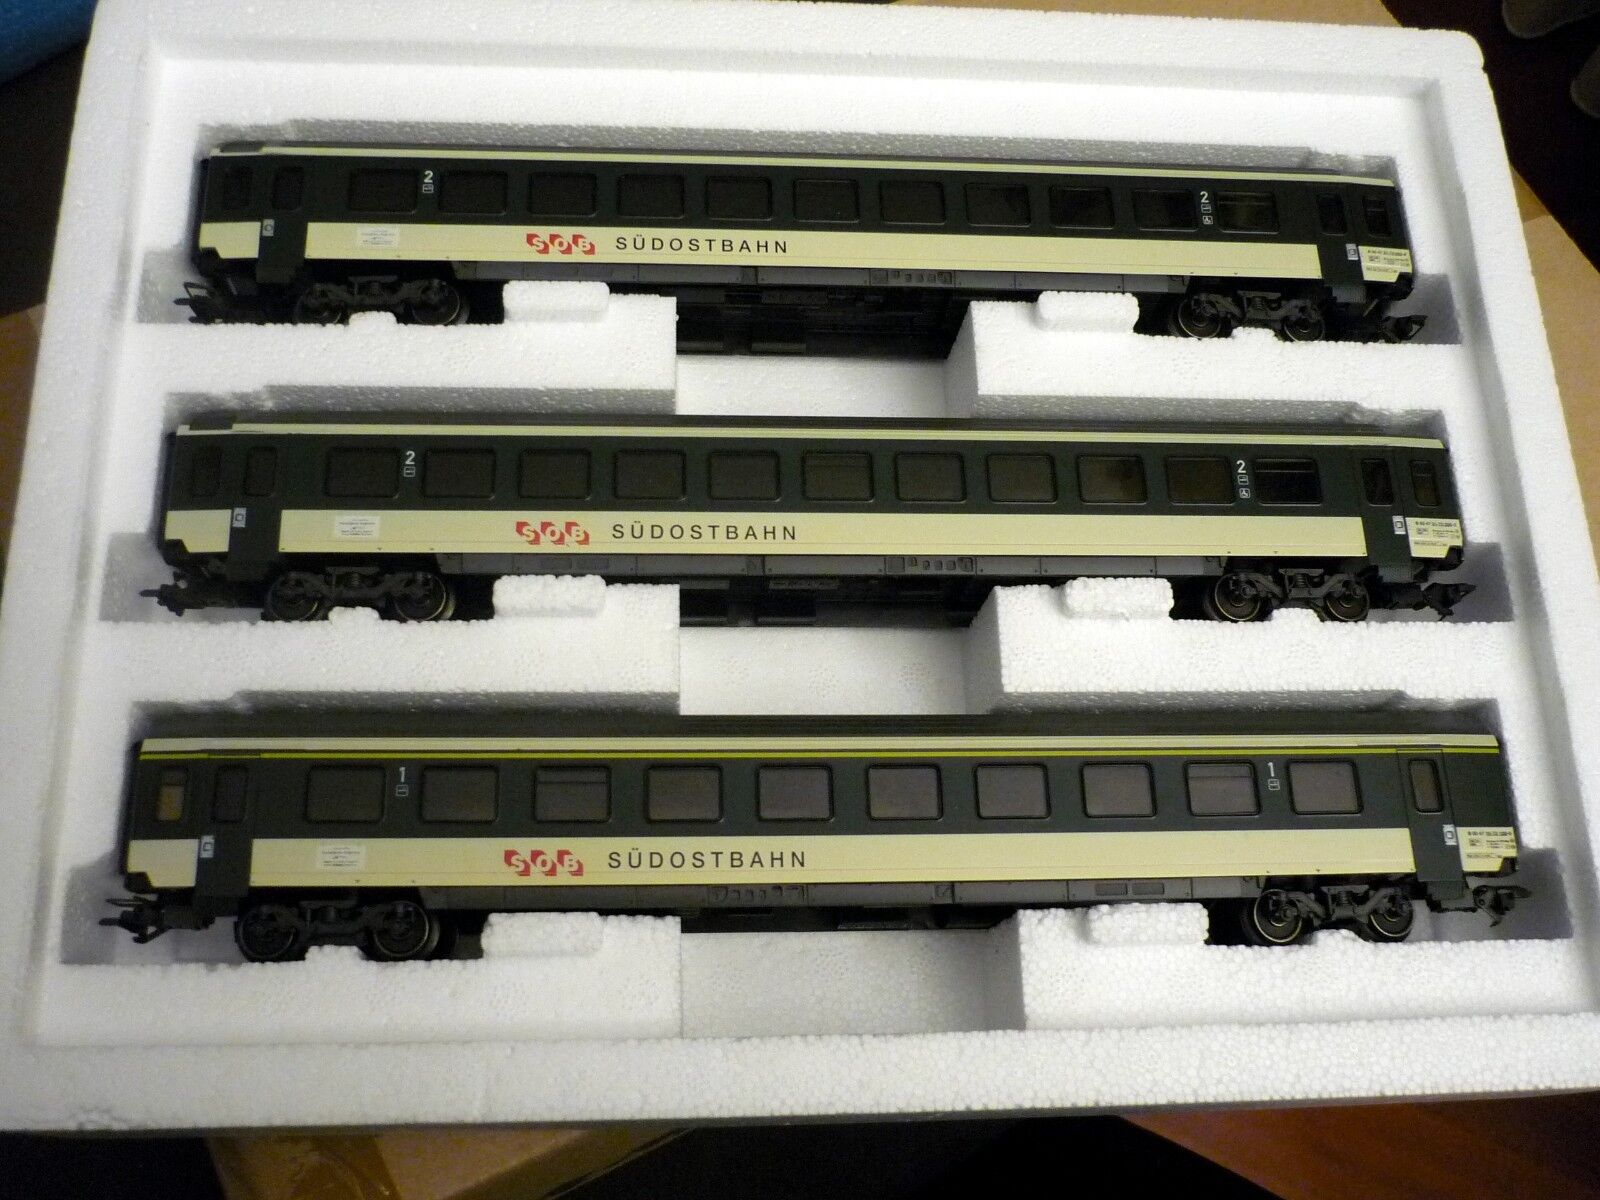 h0 42161 Express Train Set with interior lighting of sob, never used